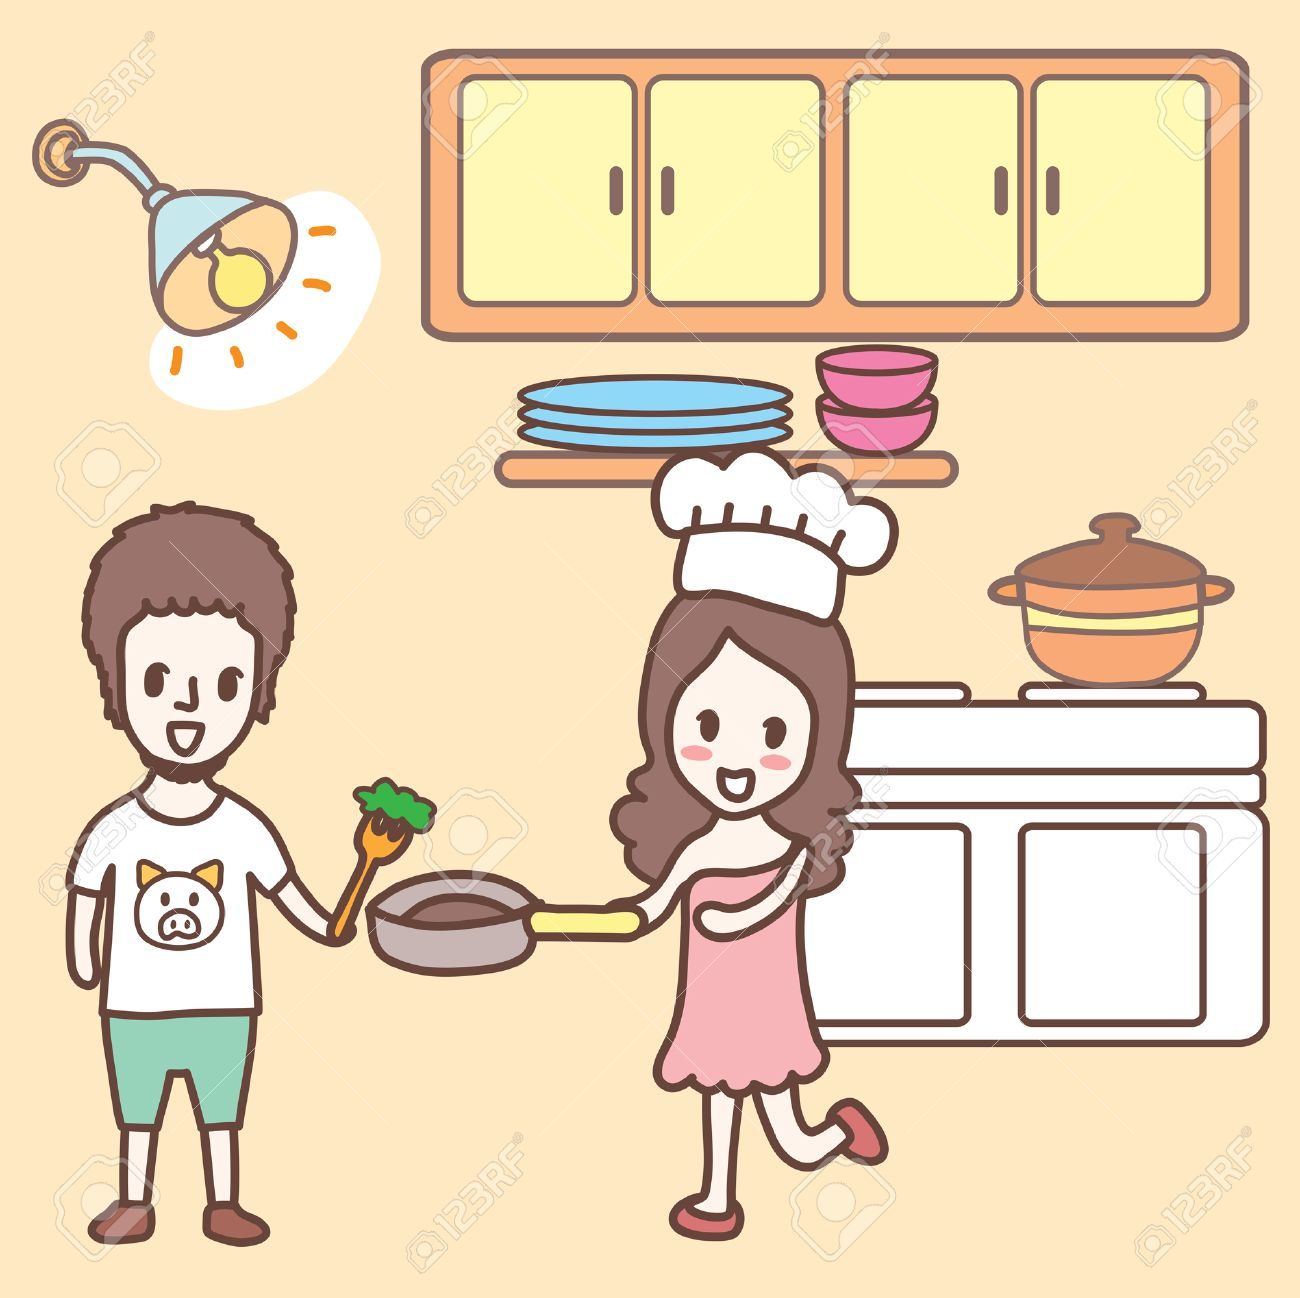 Couple Cooking Together Cartoon Royalty Free Cliparts Vectors And Stock Illustration Image 31403162